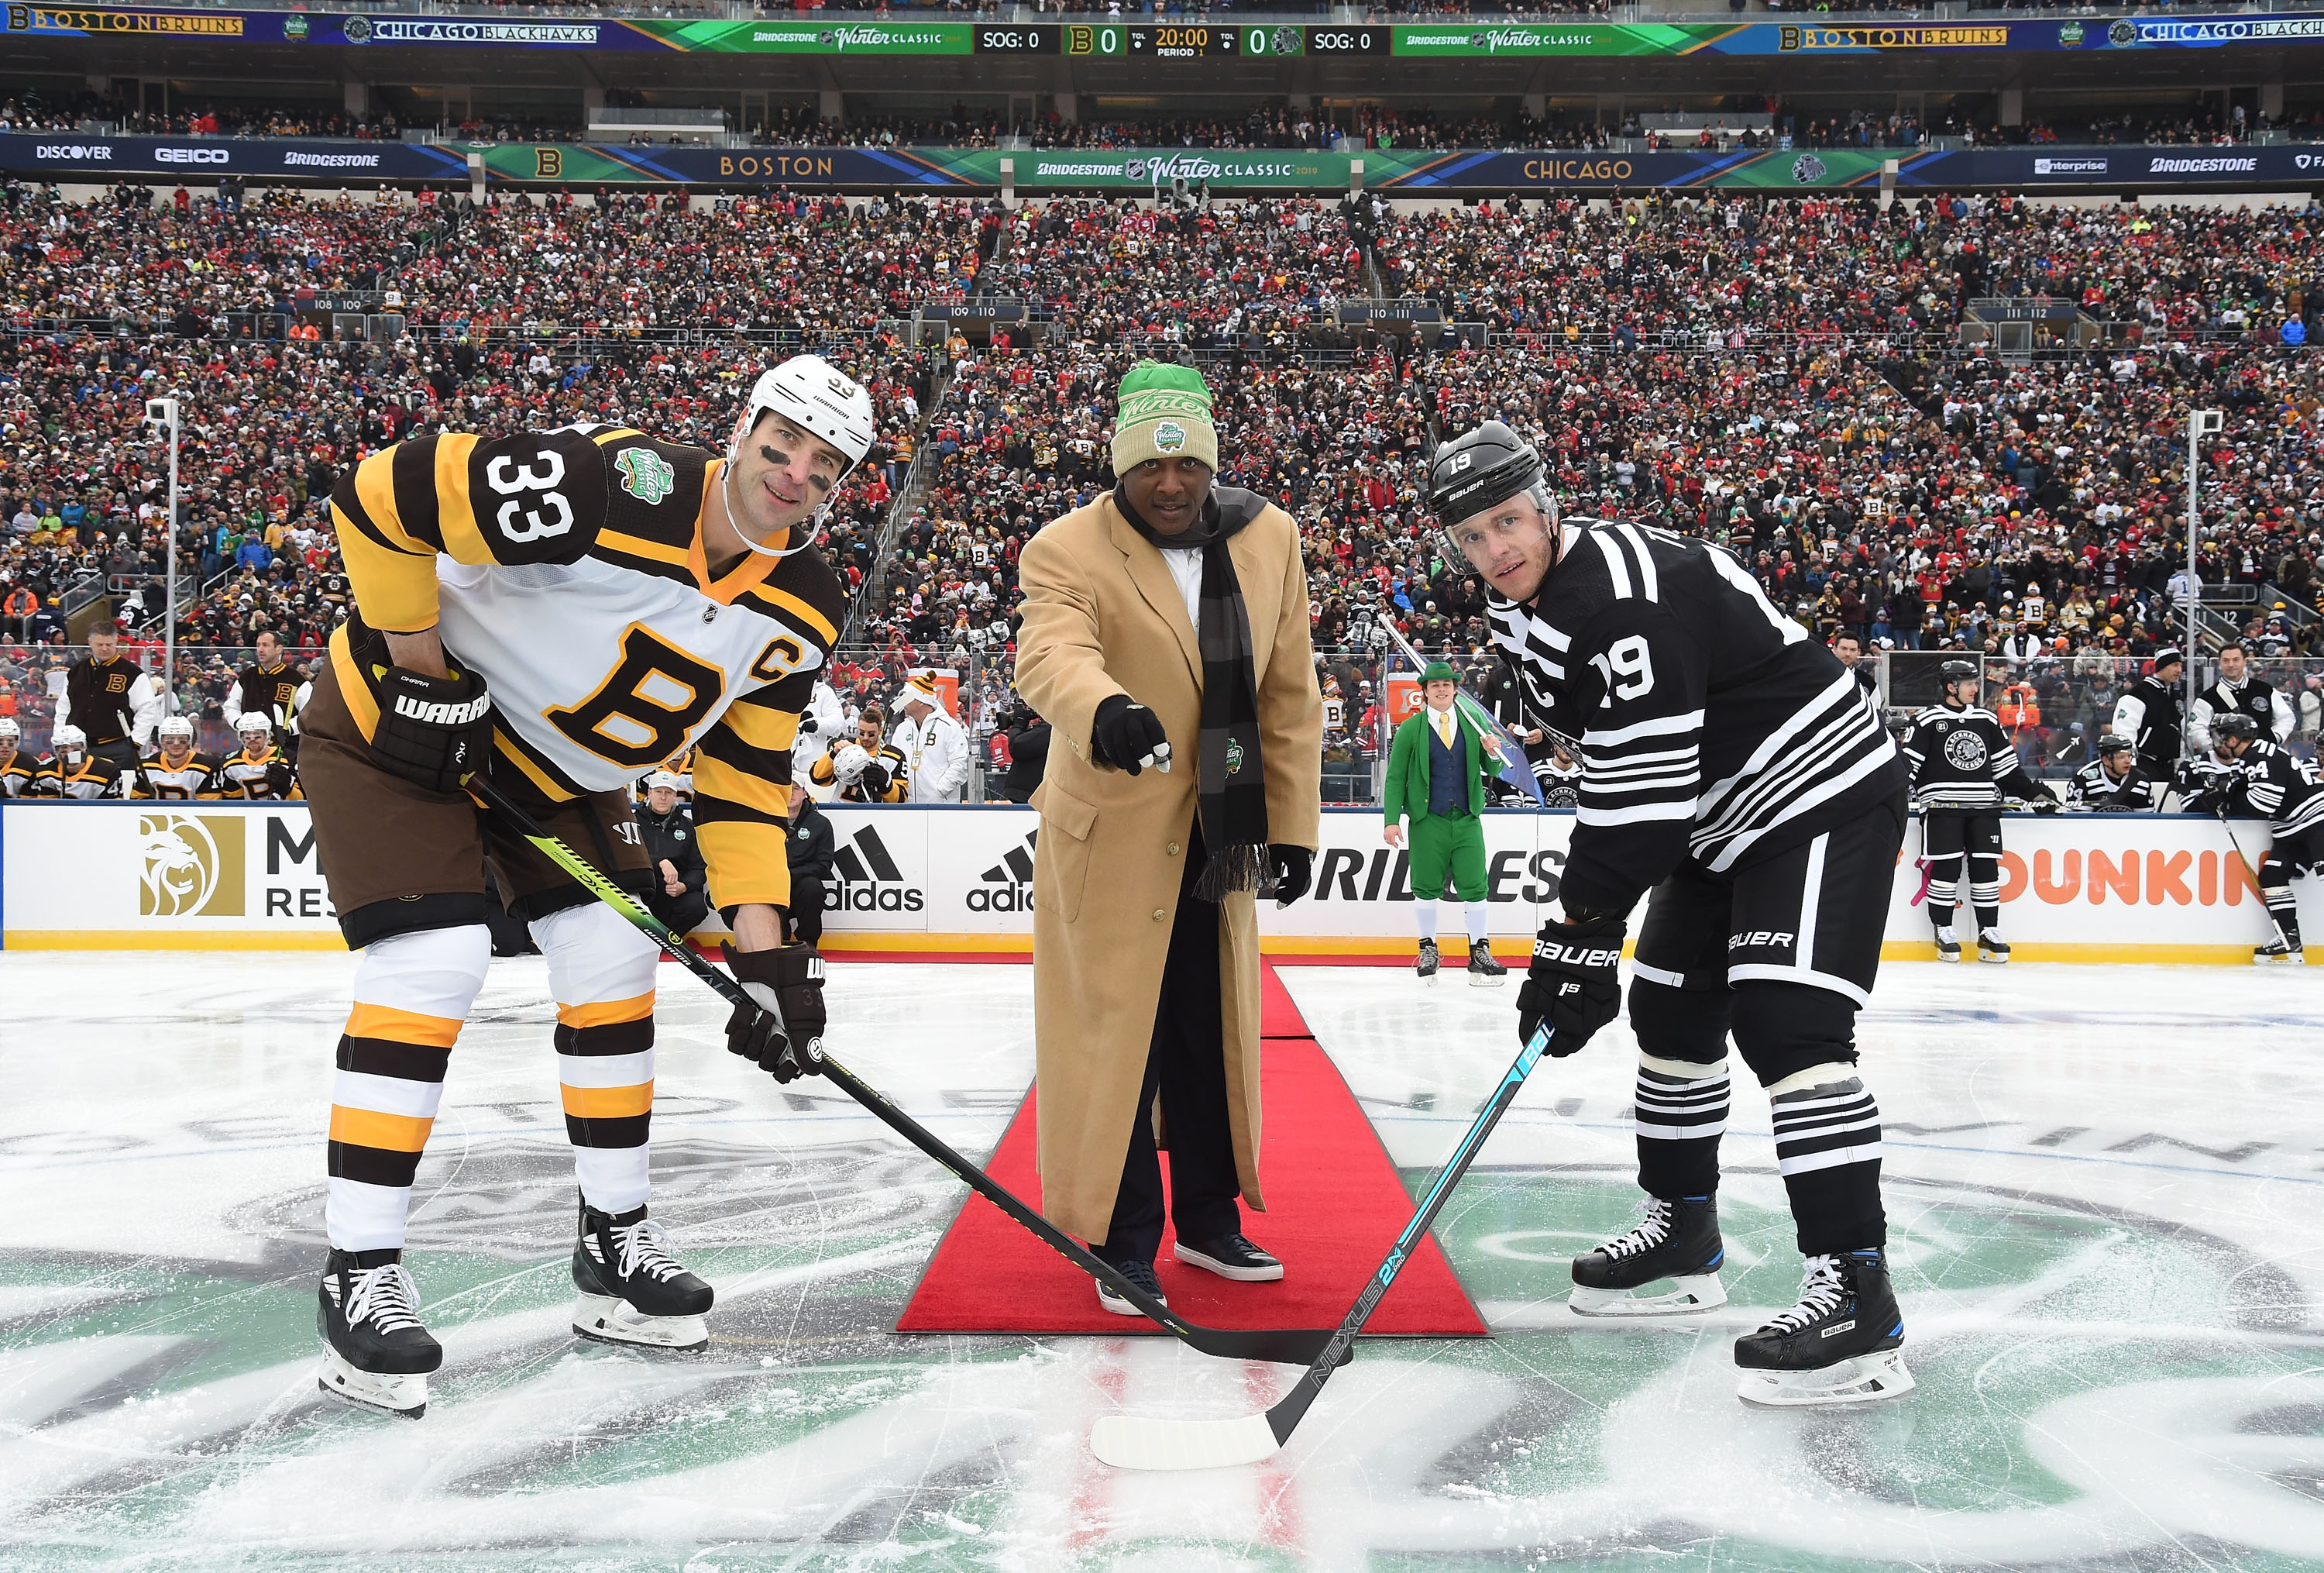 345feb8f2 Winter Classic 2019: Photo gallery from Blackhawks vs. Bruins at Notre Dame